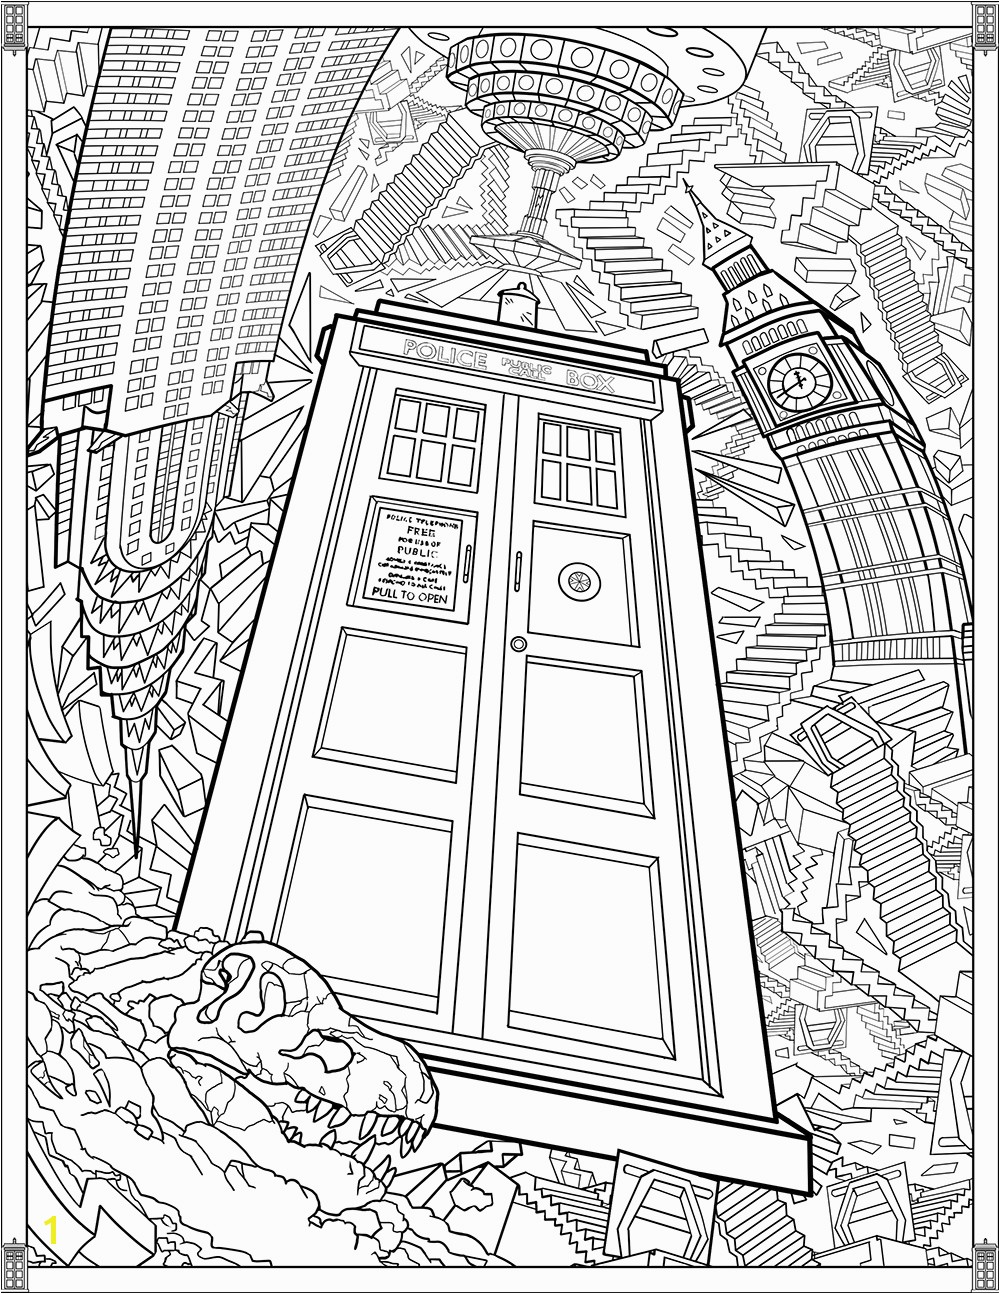 Tardis Printable Coloring Pages Doctor who Wibbly Wobbly Timey Wimey Coloring Pages [printables] Fun Blog